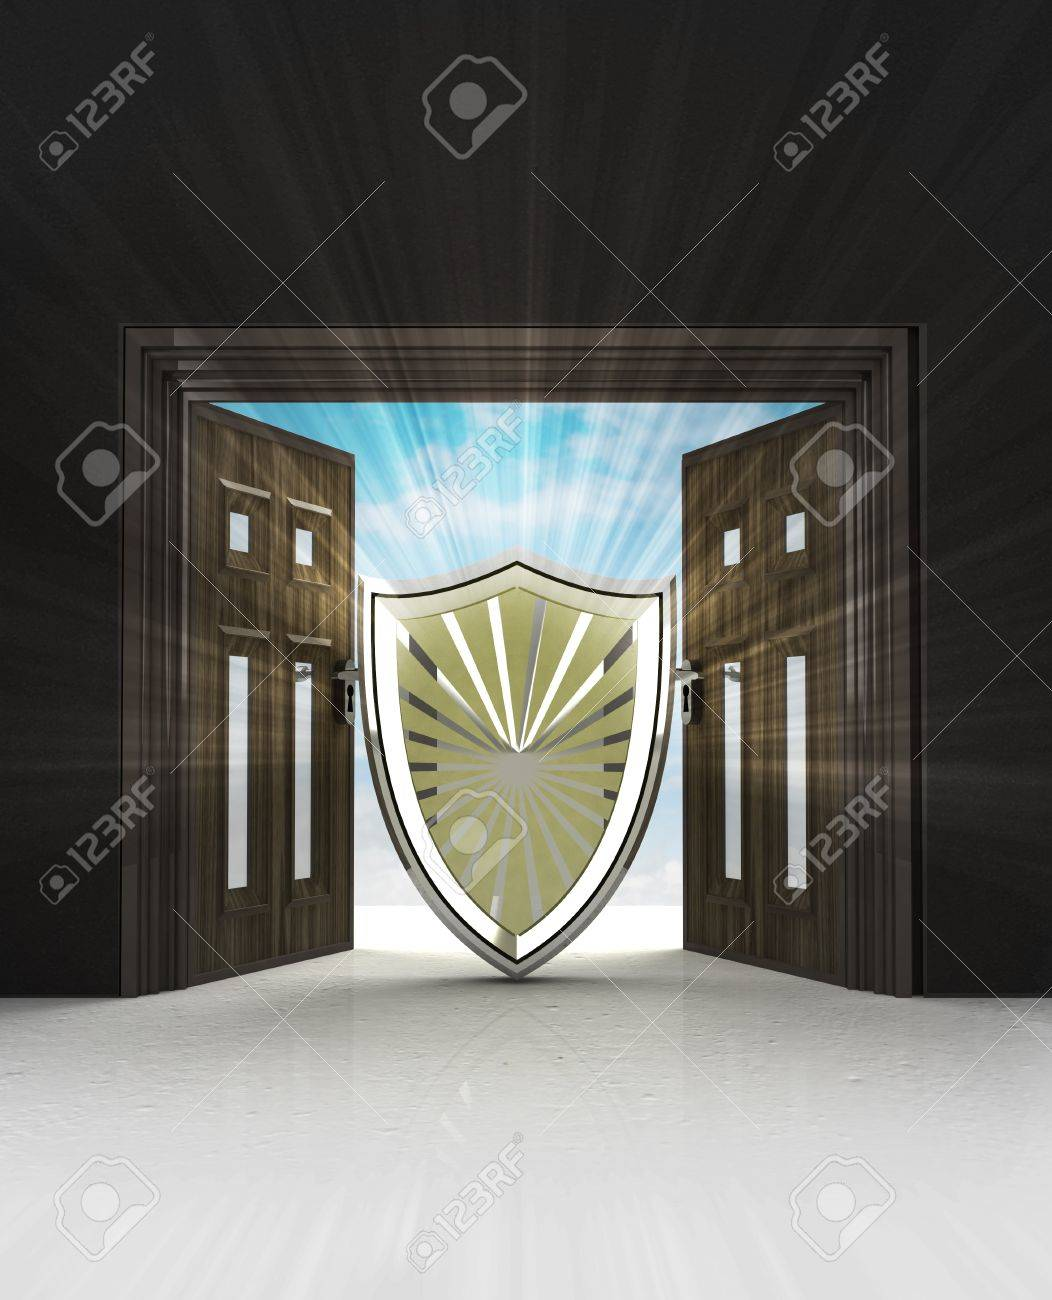 security and defence shield in doorway space with sky flare illustration Stock Illustration - 24667990